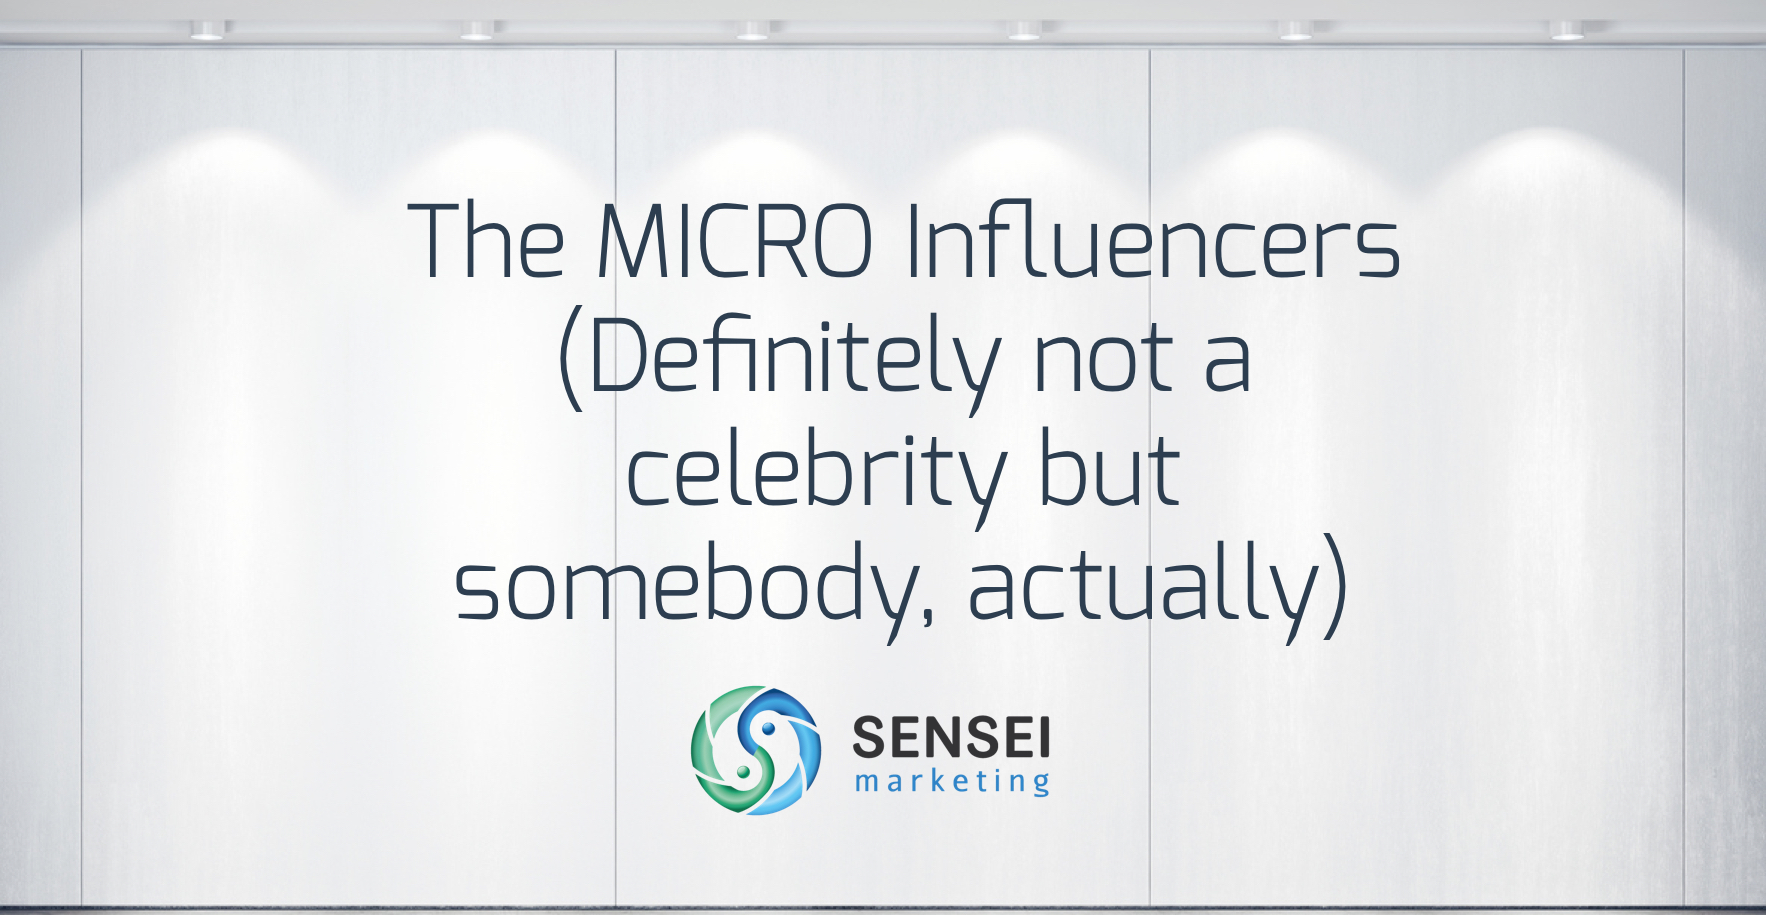 The MICRO Influencers (Definitely not a celebrity but